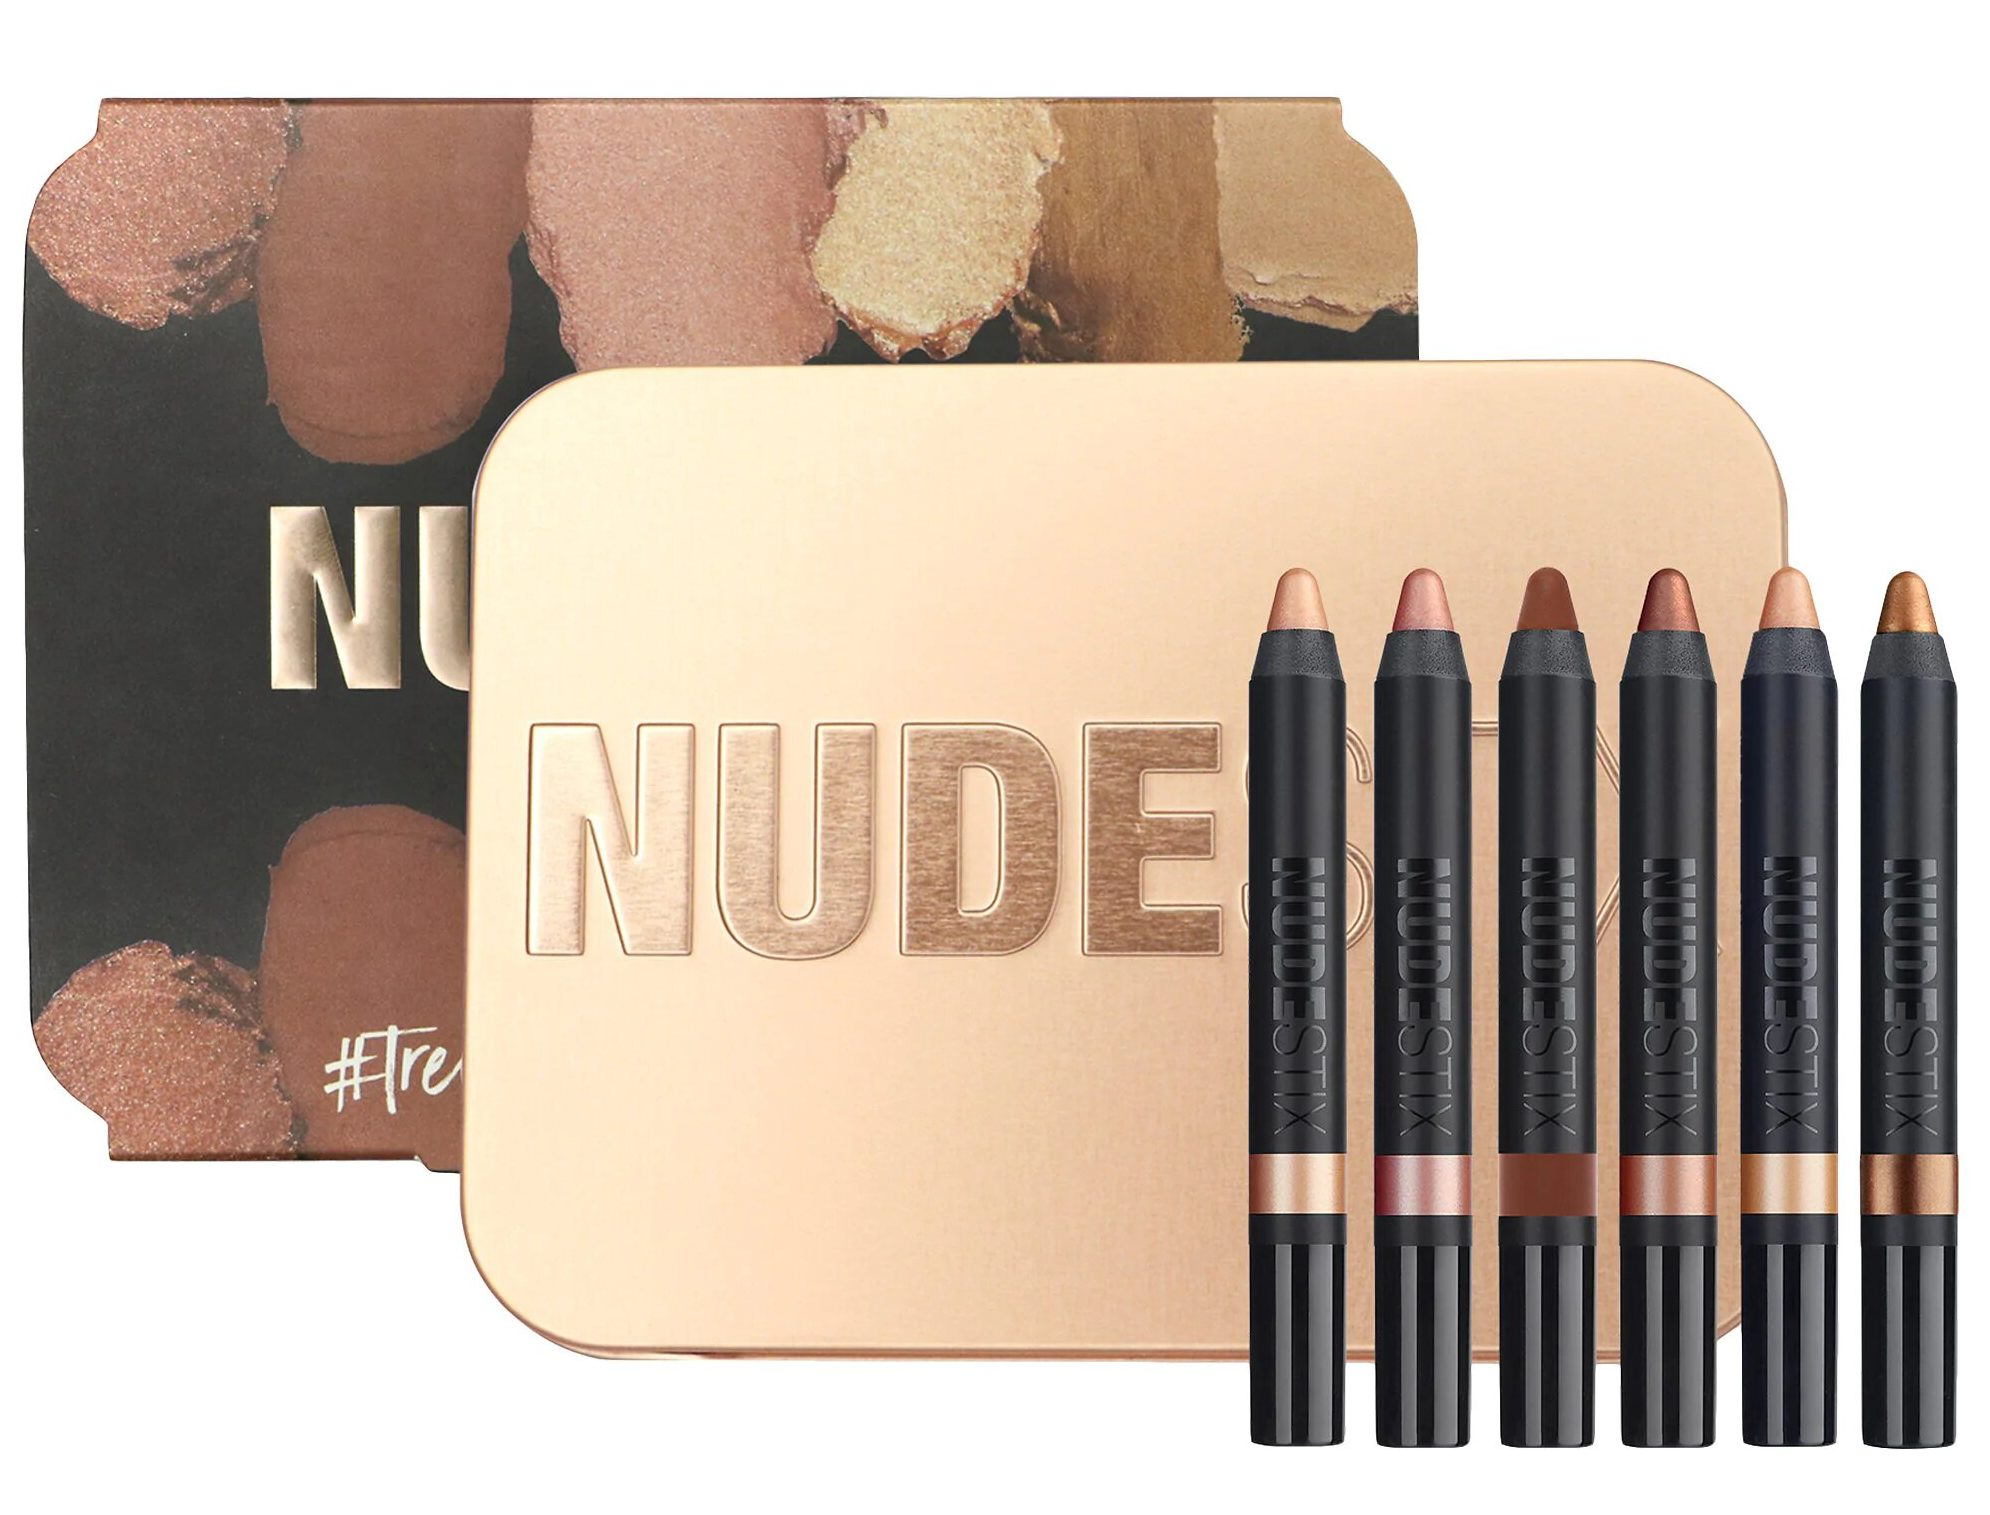 Christmas Eyeshadow Palettes Nudestix Nude Rose Gold Eye Palette Limited Edition